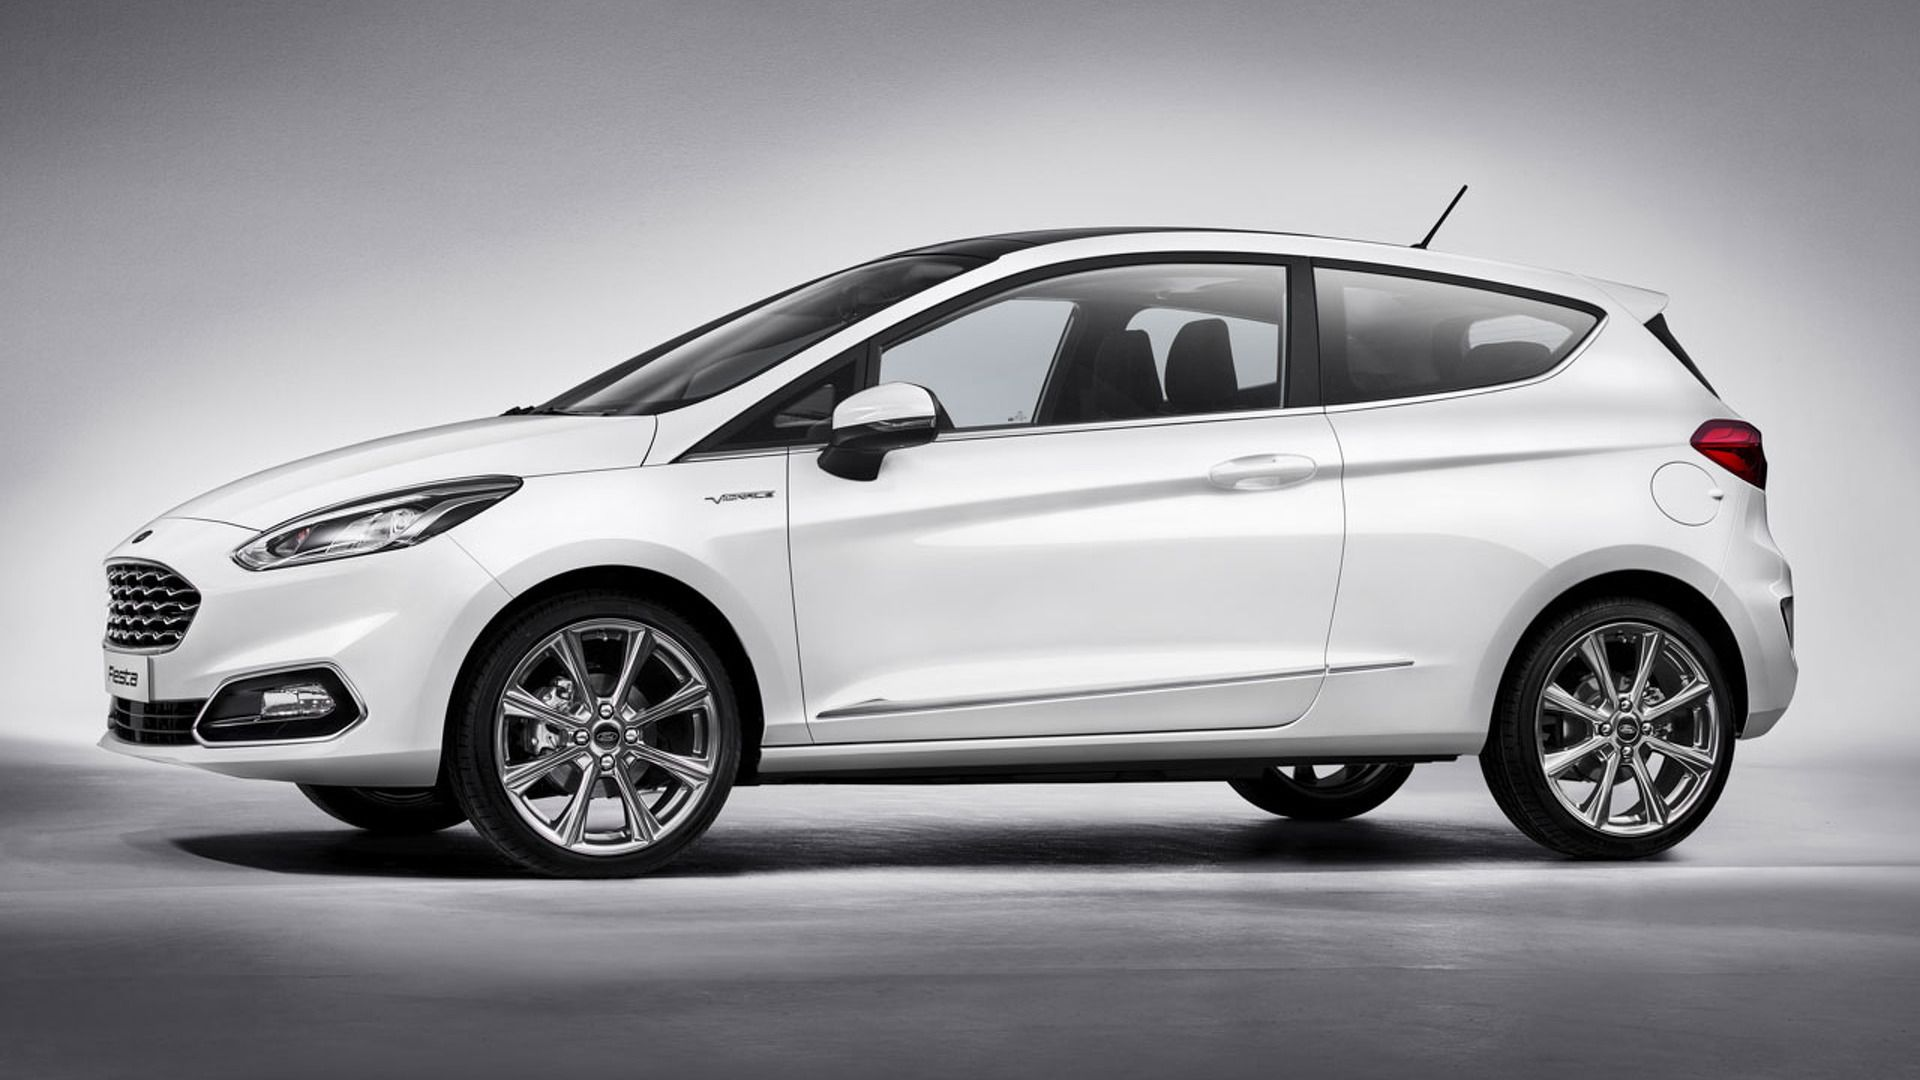 new 2017 ford fiesta revealed - pictures - https://carparse.co.uk